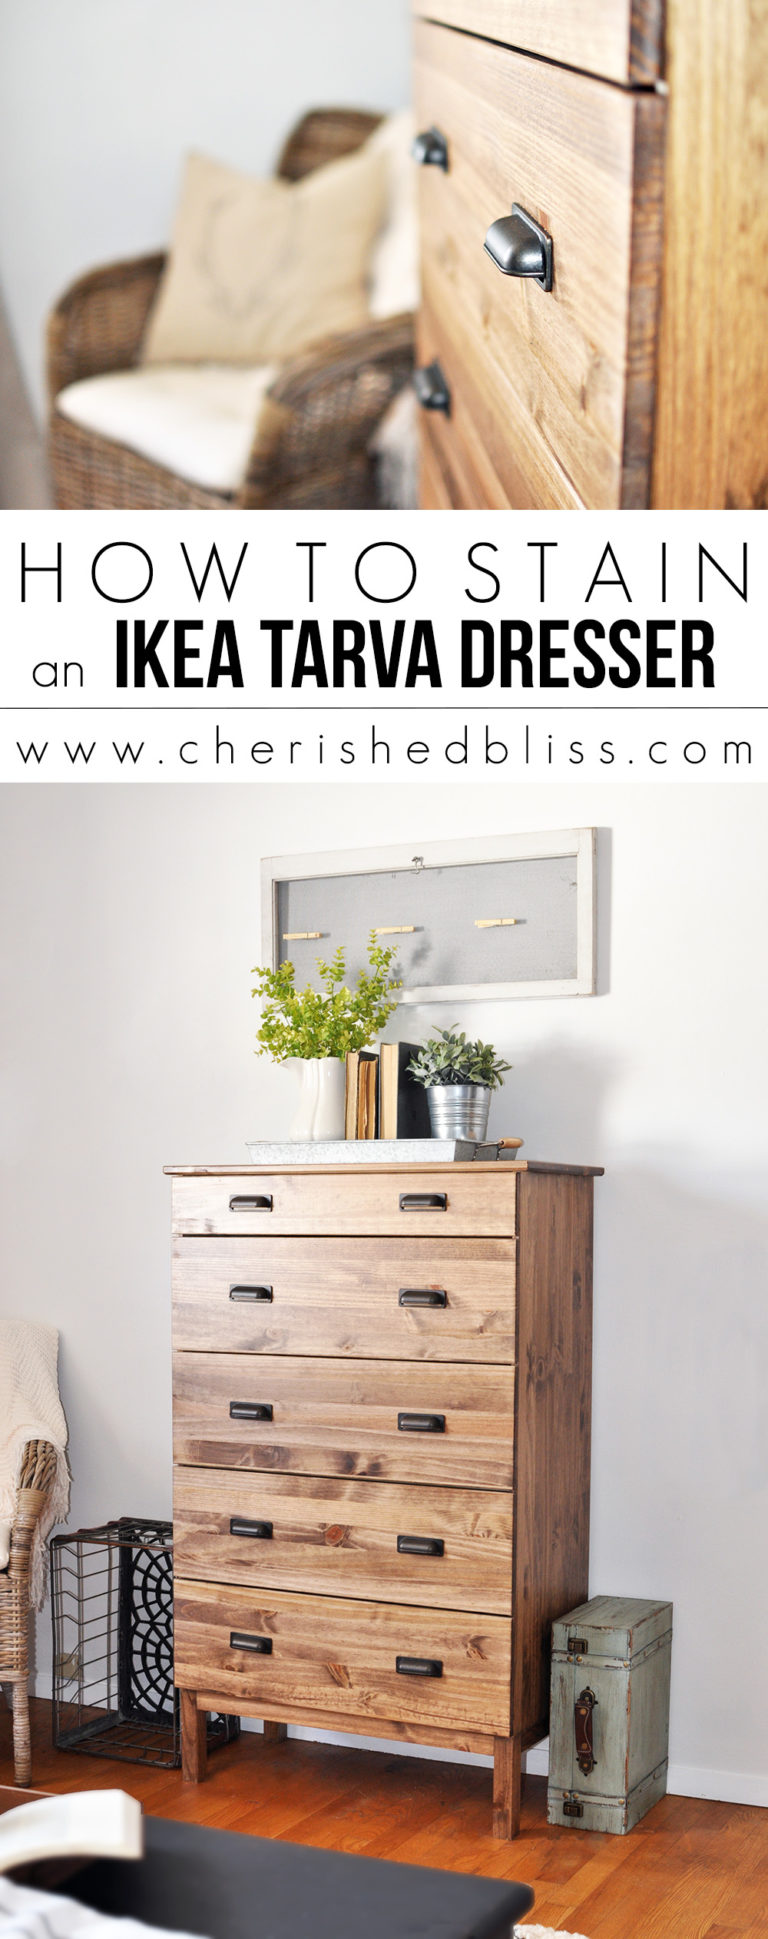 Ikea Hack | How to Stain an Ikea Tarva Dresser | Joanna Gaines Approved DIY Projects